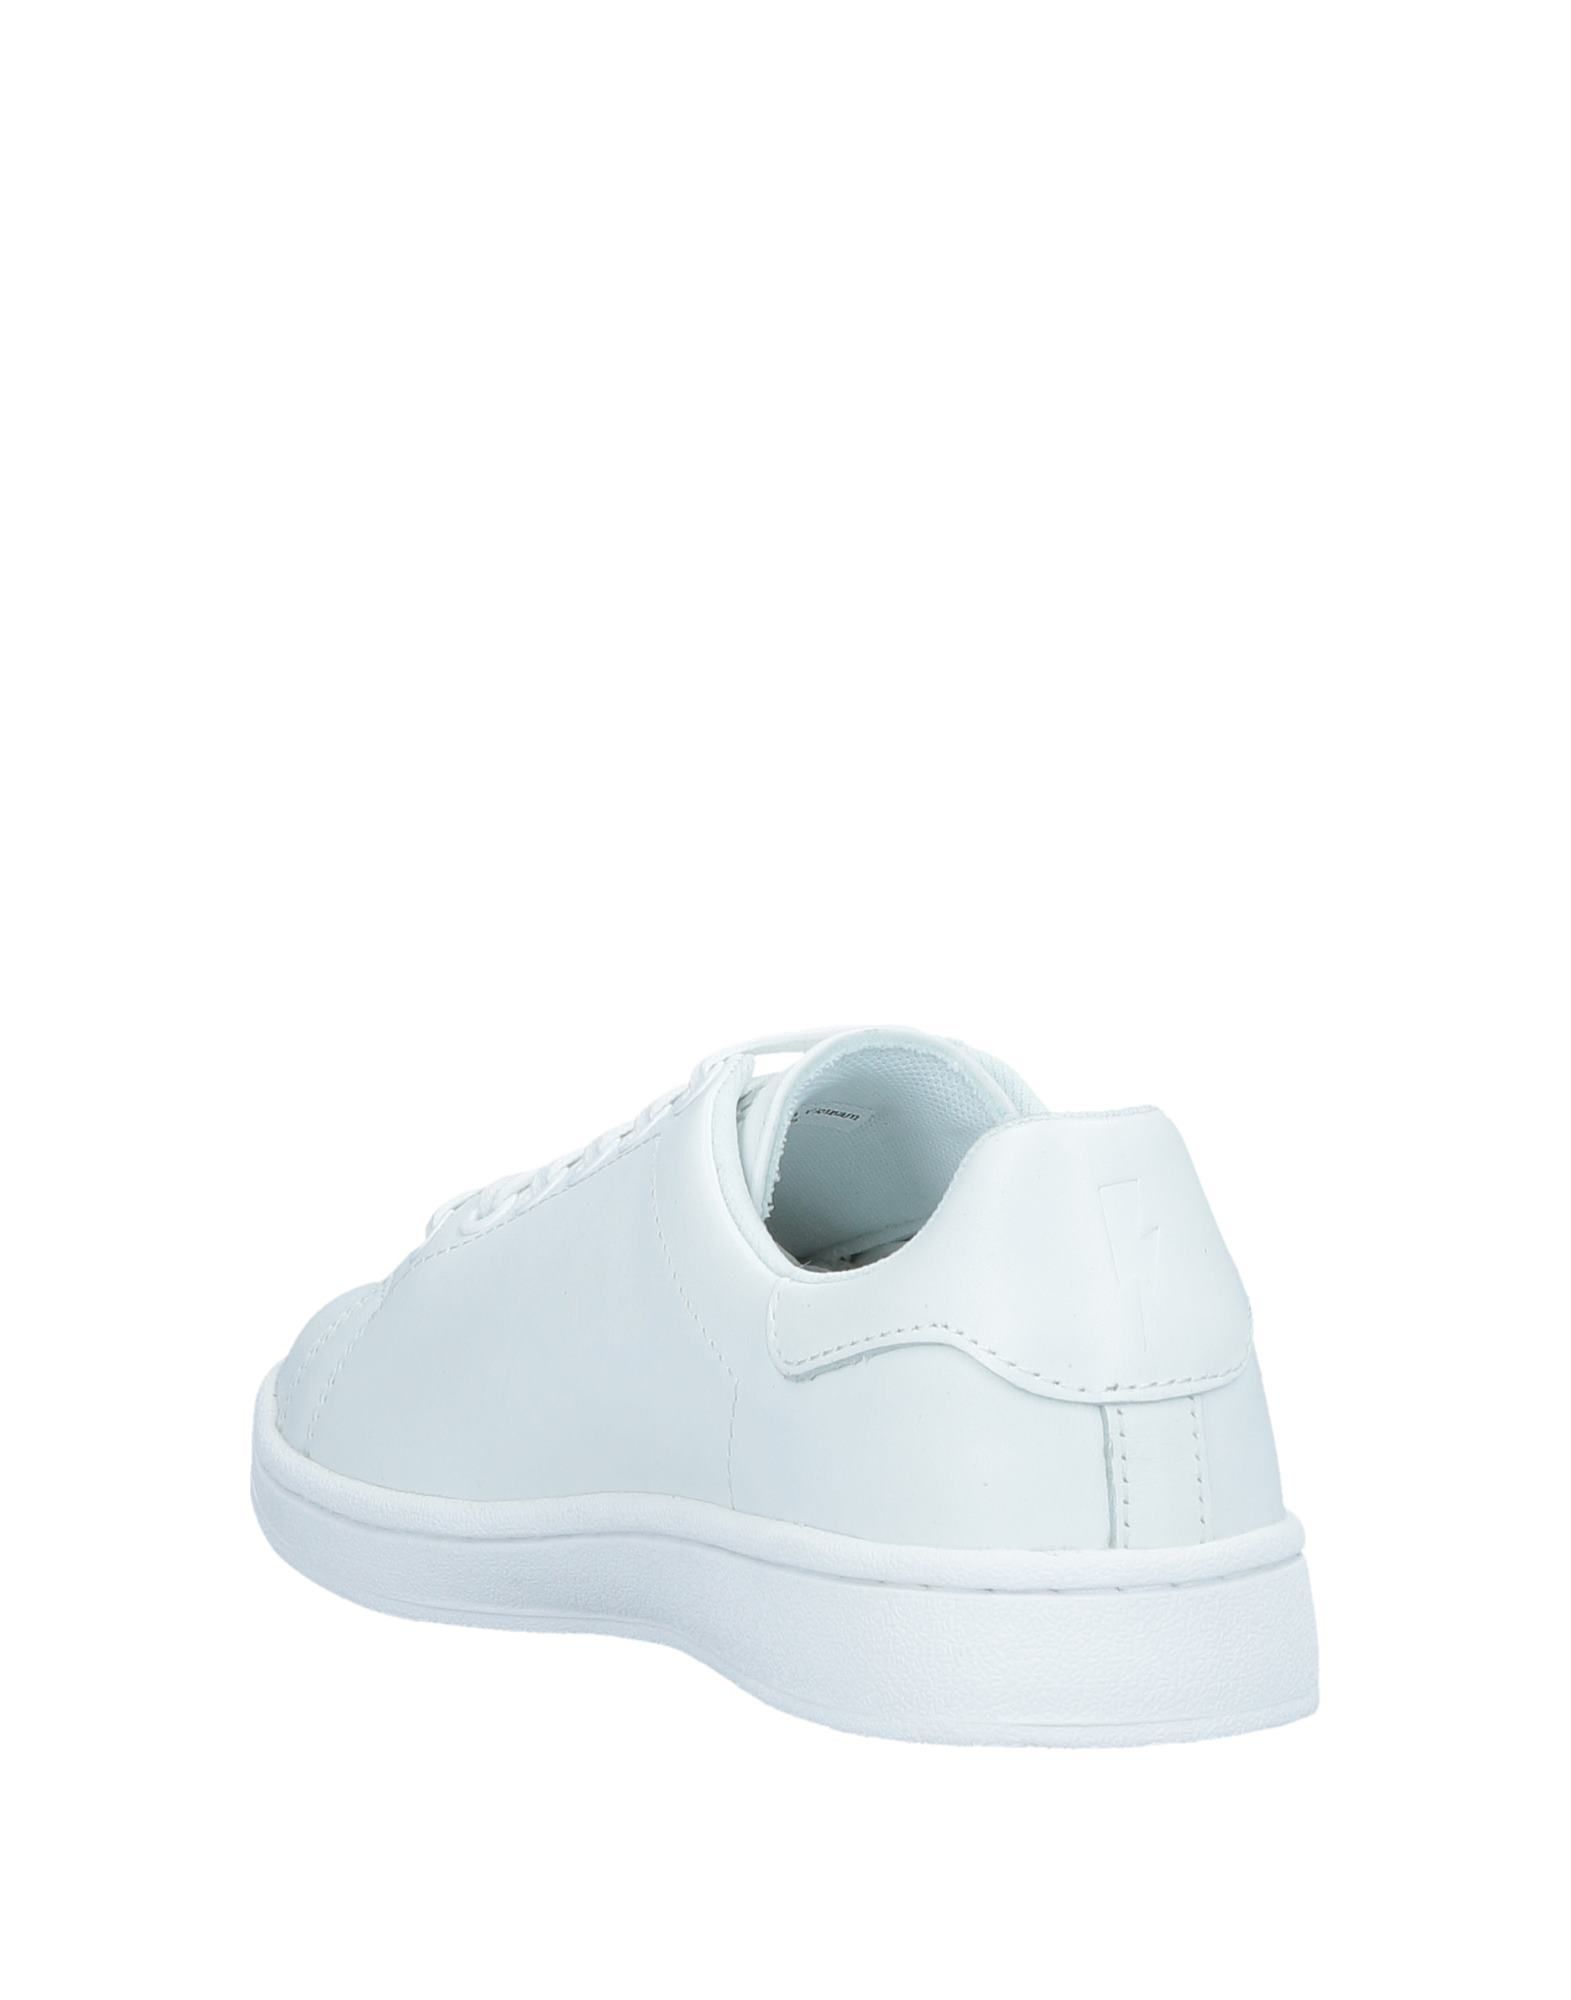 Neil Barrett White Leather Sneakers